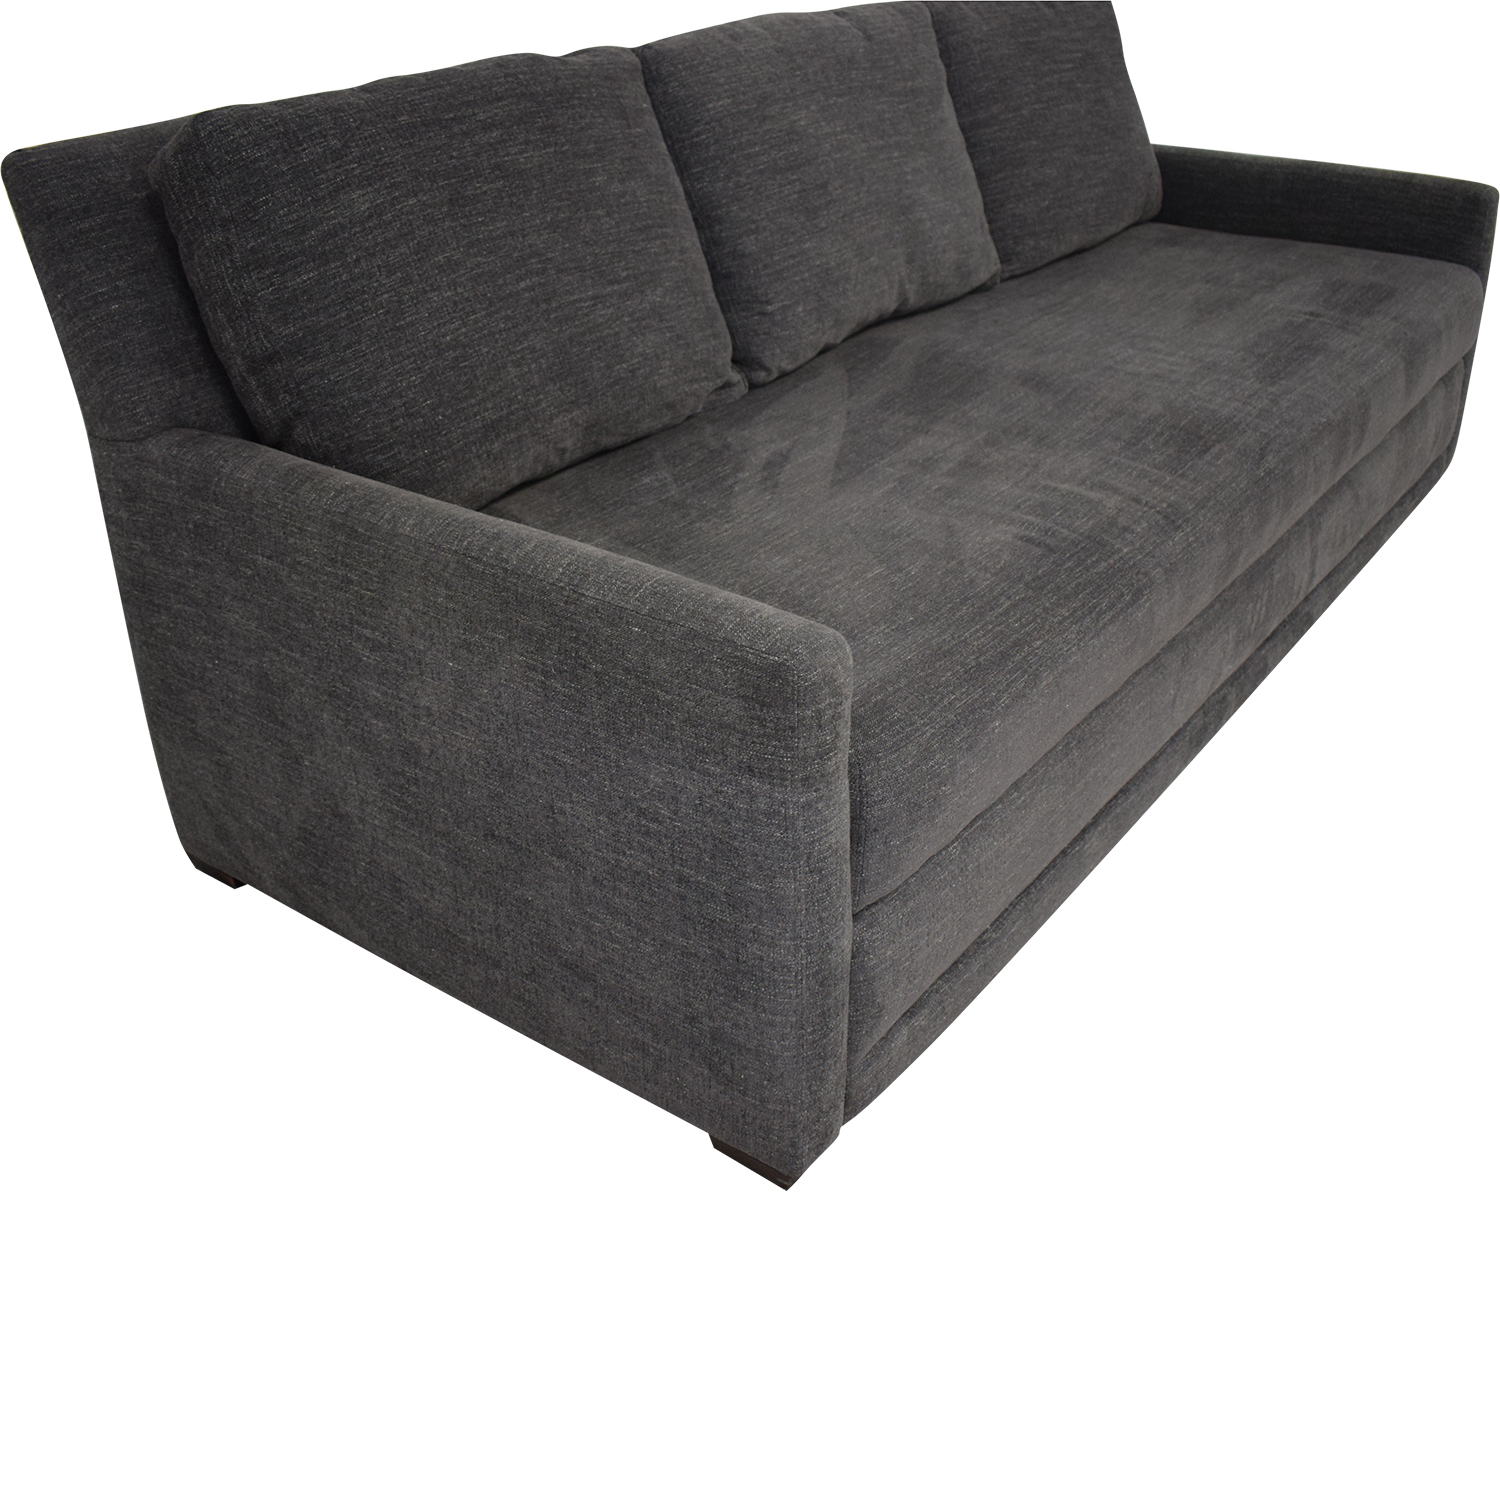 Crate & Barrel Crate & Barrel Reston Queen Trundle Sleeper Sofa